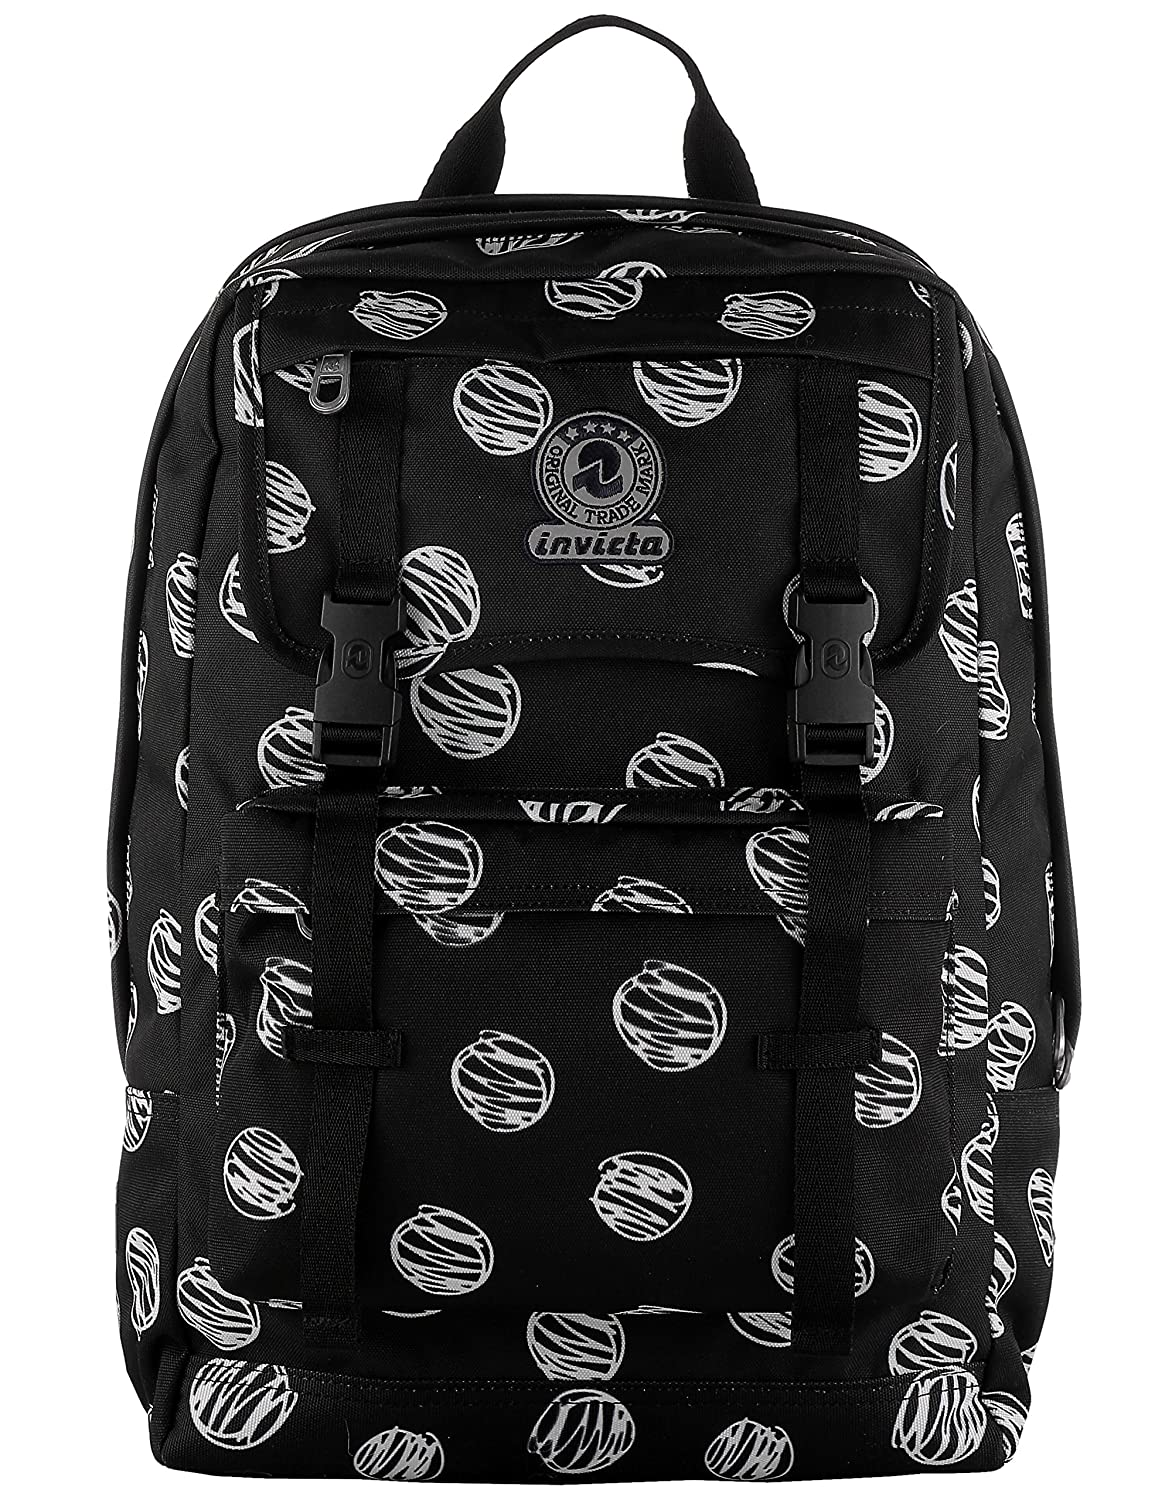 53c5ca9777 Backpack Duffy INVICTA - BRUSHED DOTS - Black - 30 Lt - Double Compartment  - Internal Laptop Sleeve - School & Leisure: Amazon.co.uk: Luggage